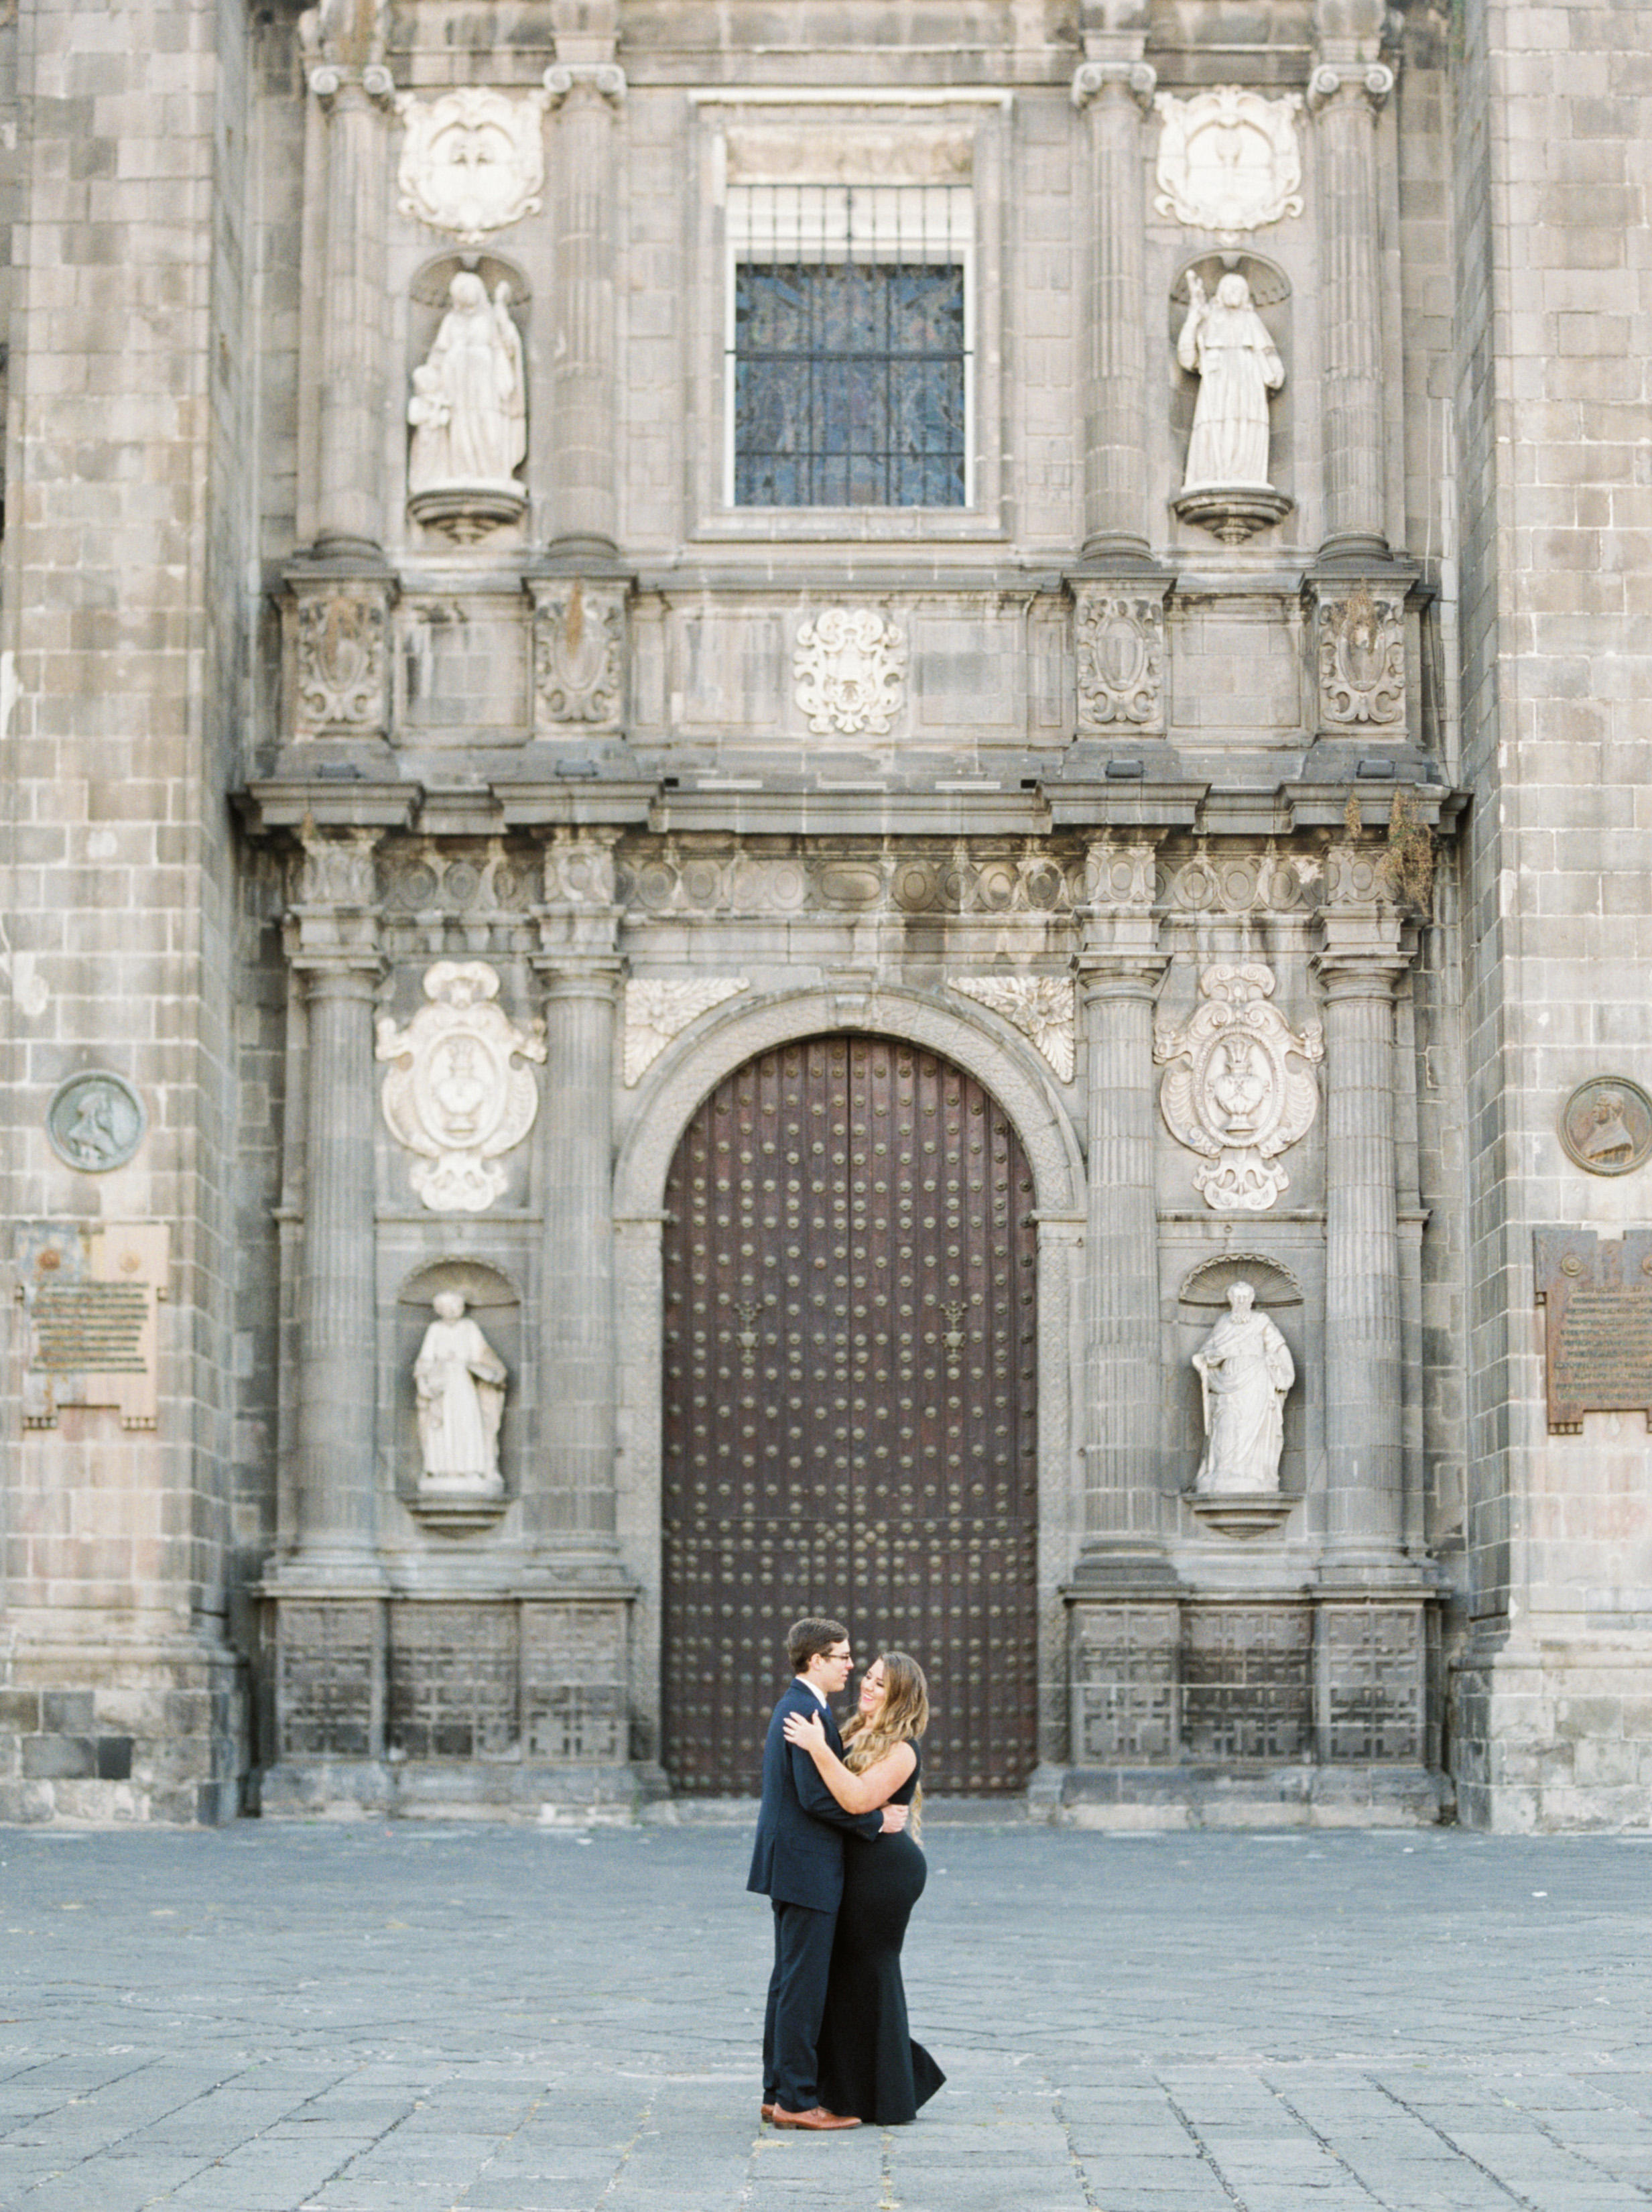 destination engagement couple pose in front of architectural building